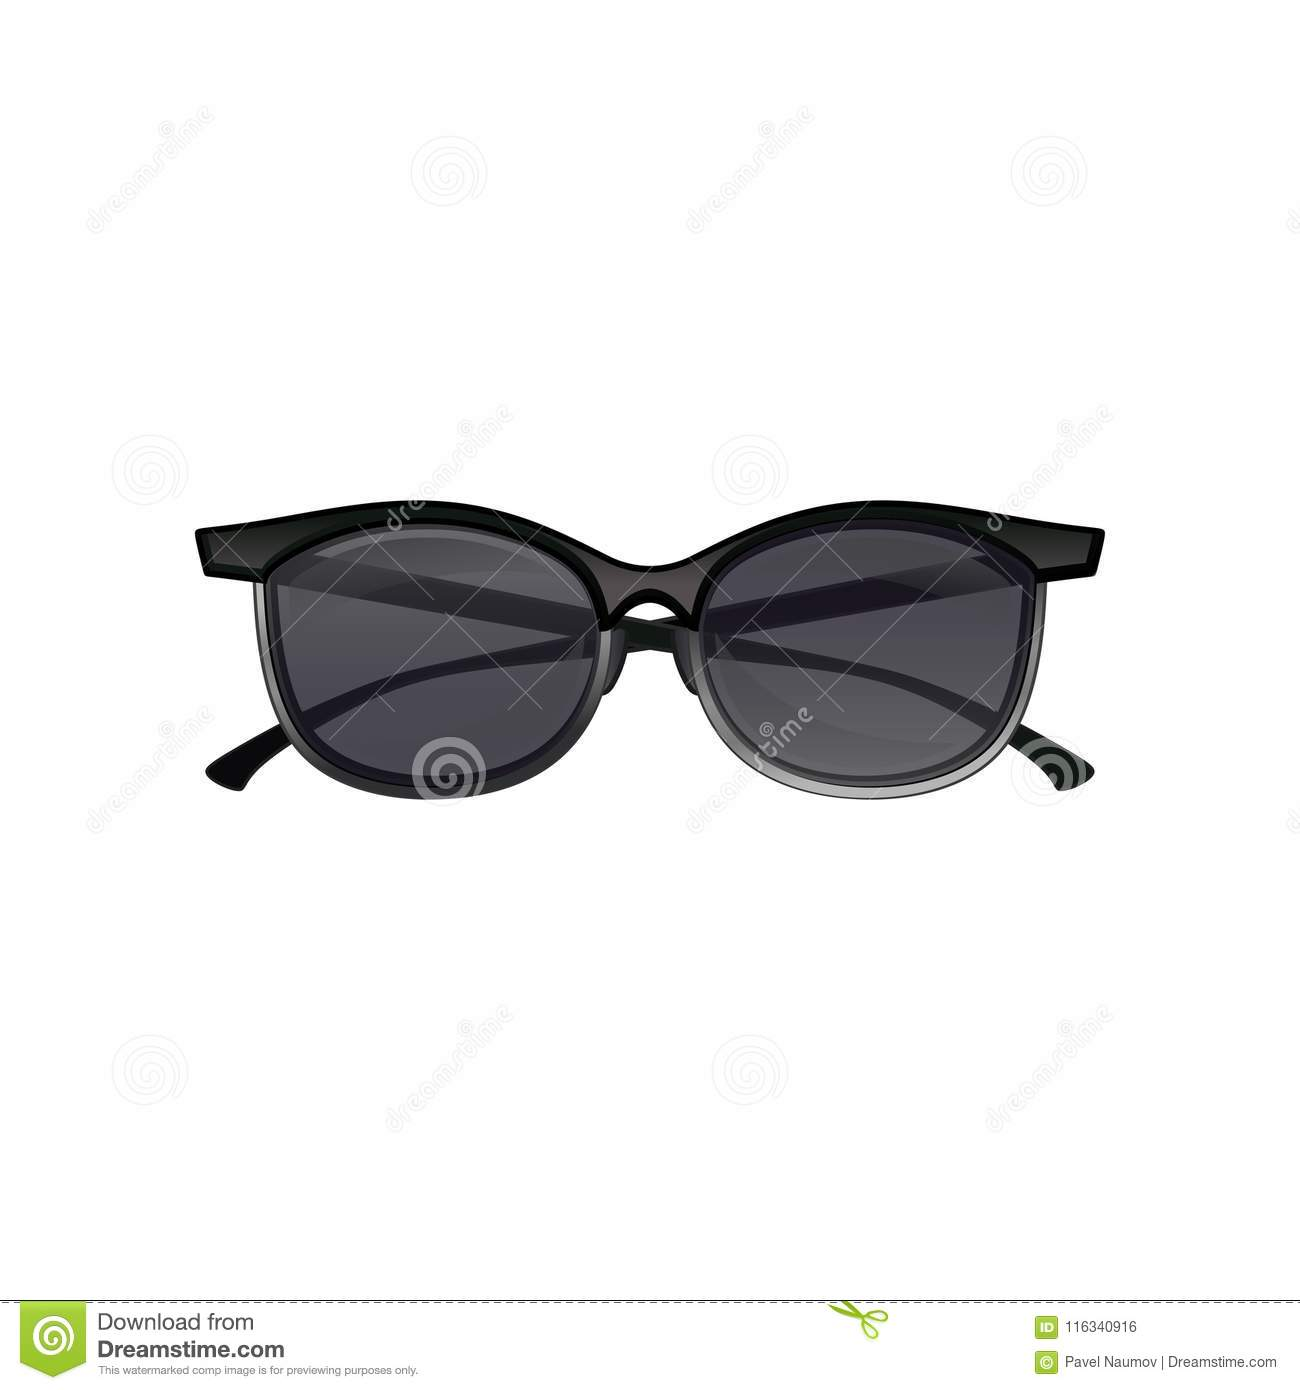 4c0641dd6e Icon of vintage clubmaster sunglasses black tinted lenses and half frame.  Fashion unisex spectacles. Element for poster or web banner of optical  store.